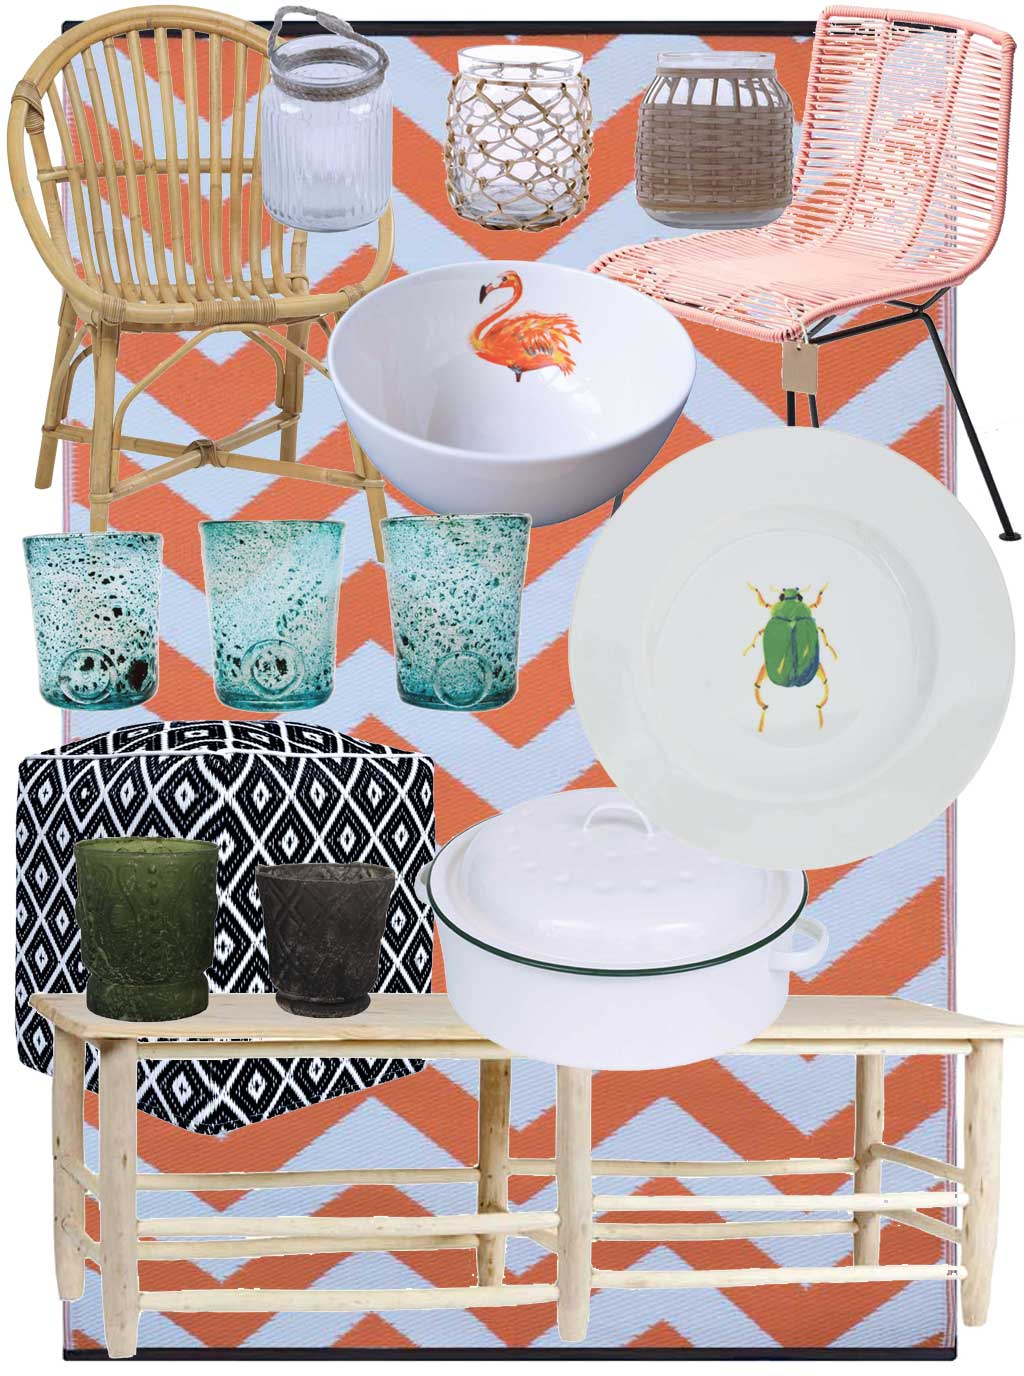 Alfresco Dining Heaven - Product Ideas - Hutsly